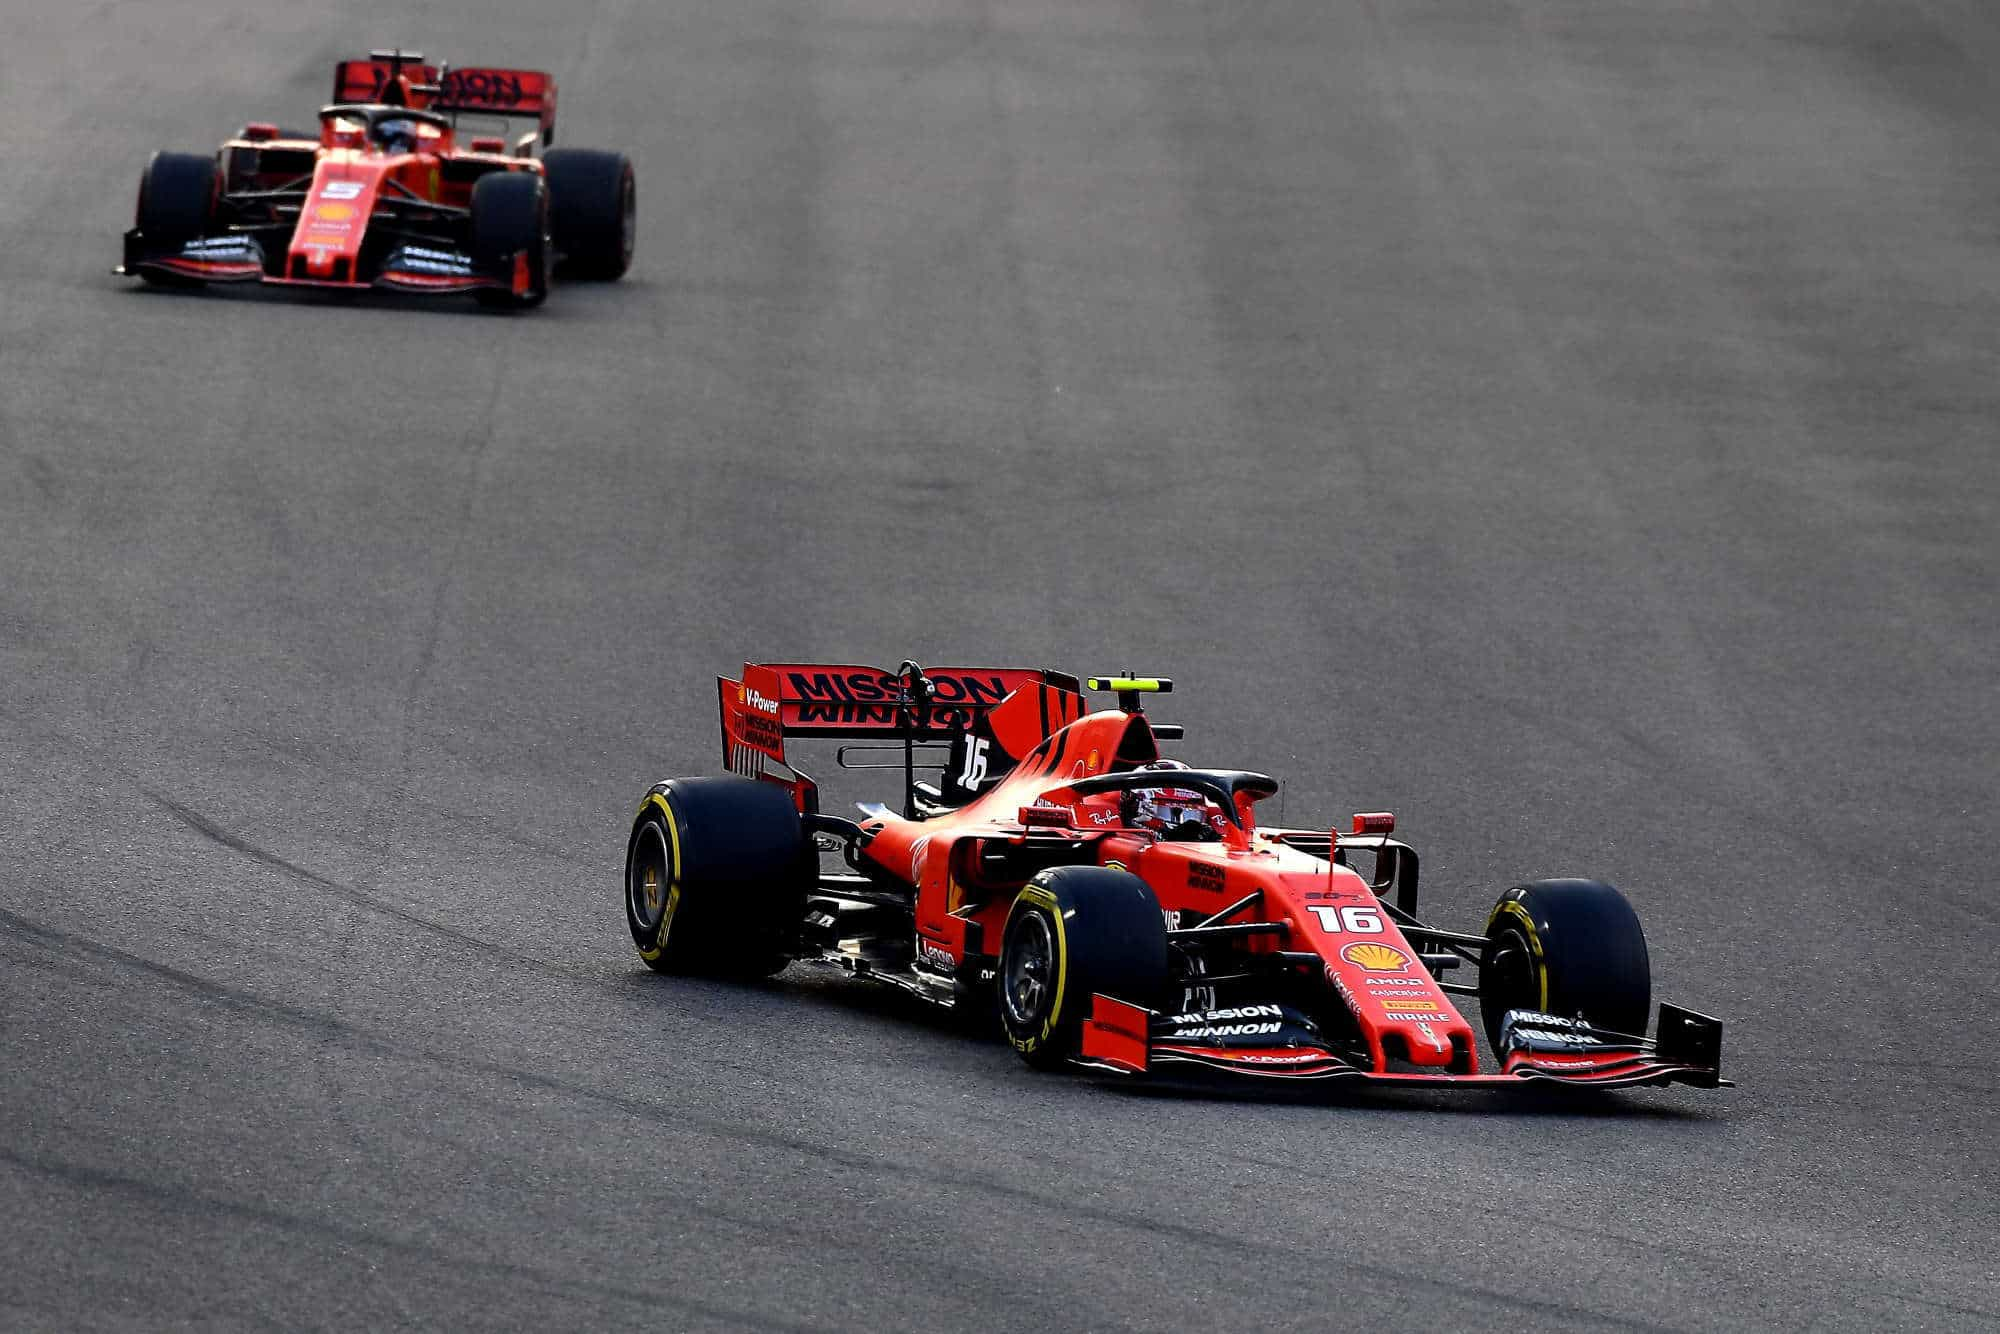 Leclerd leads Vettel 2019 Abu Dhabi GP Photo Ferrari